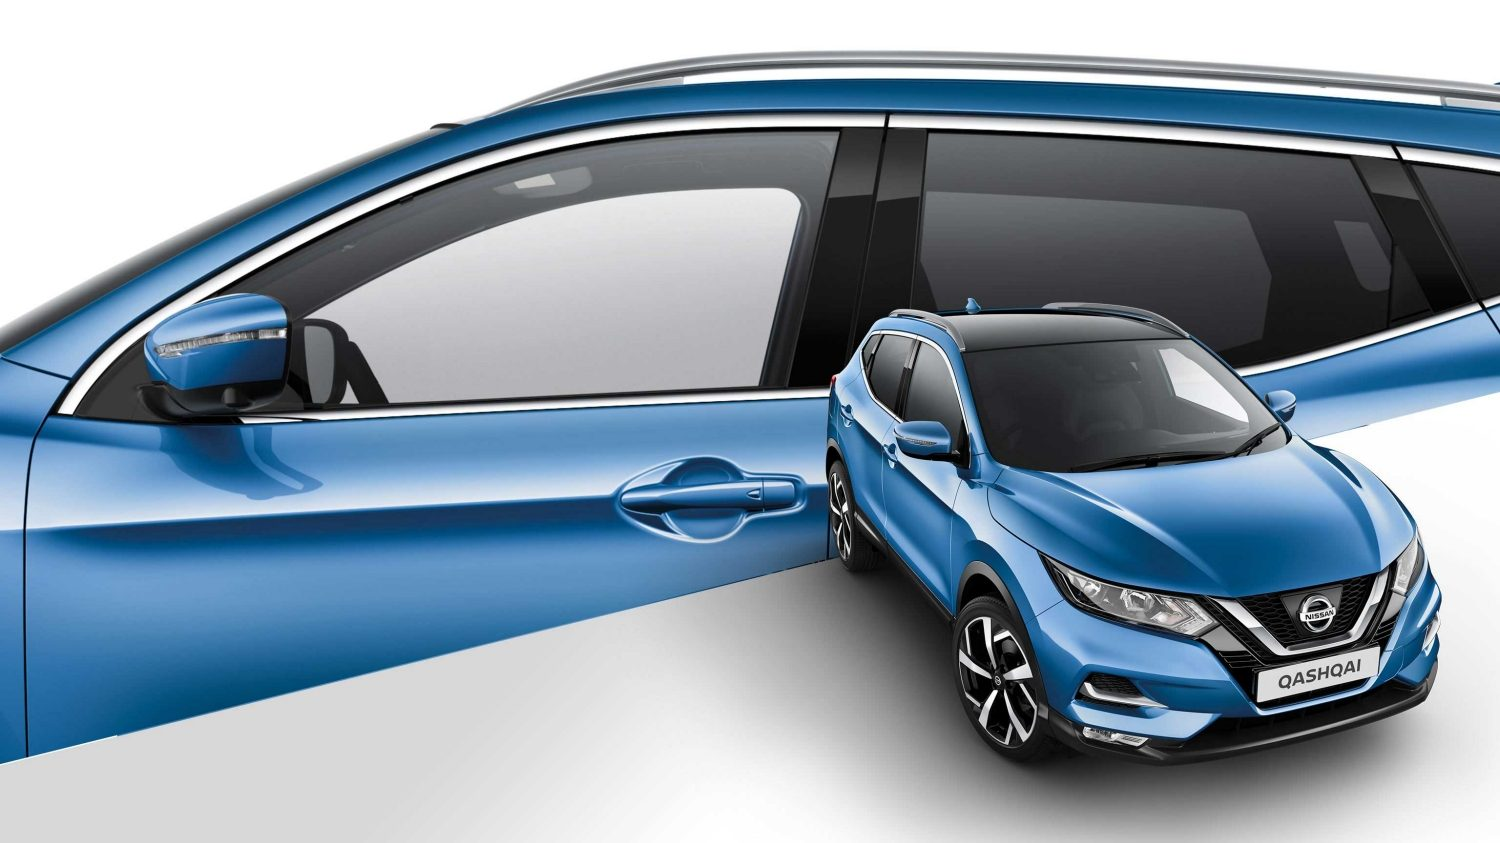 Qashqai collage 3/4 front and profile detail of mirror cap